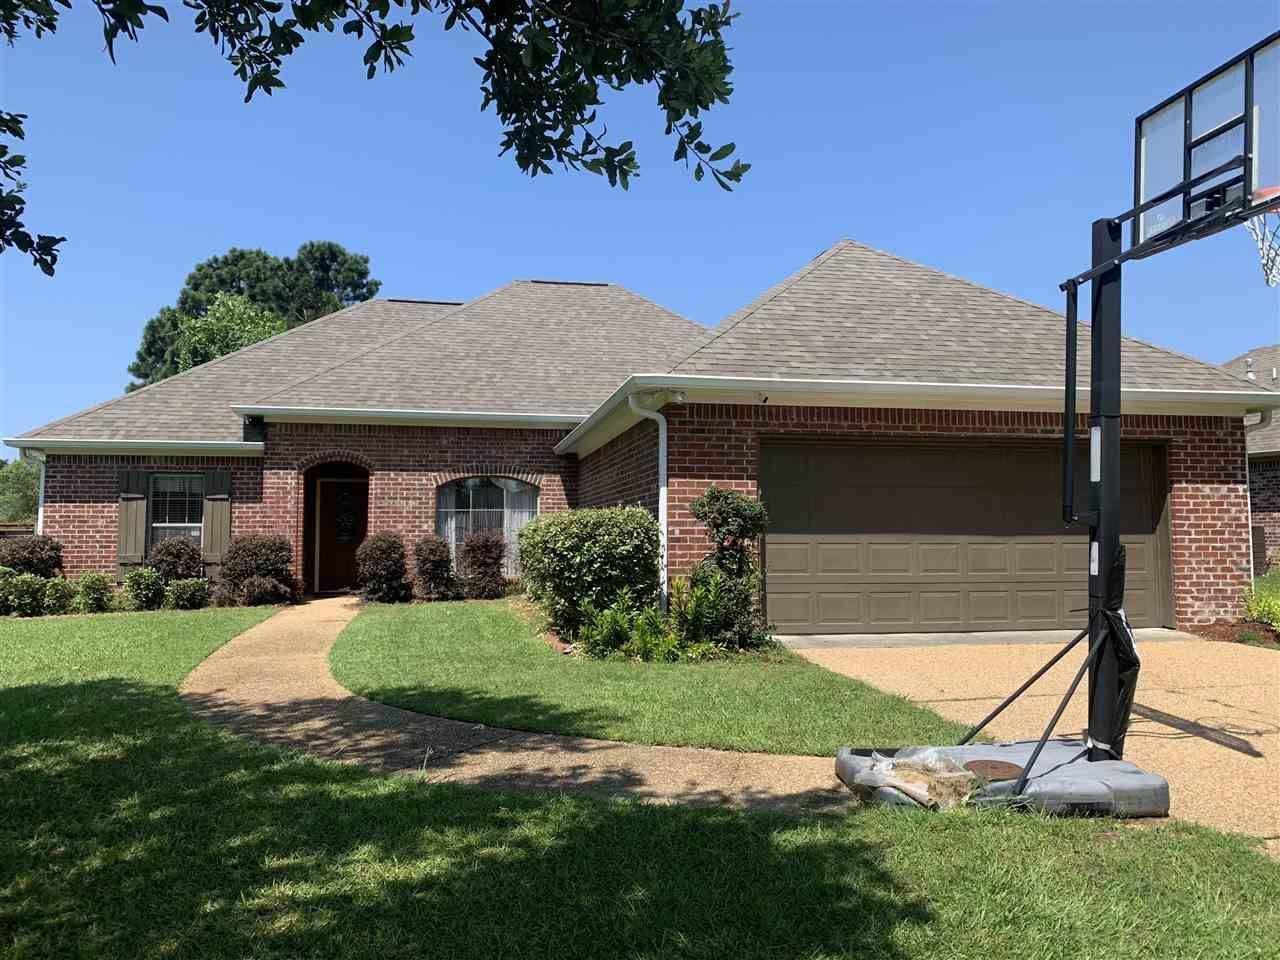 111 PROVIDENCE DR, Madison, MS 39110 - MLS#: 342909